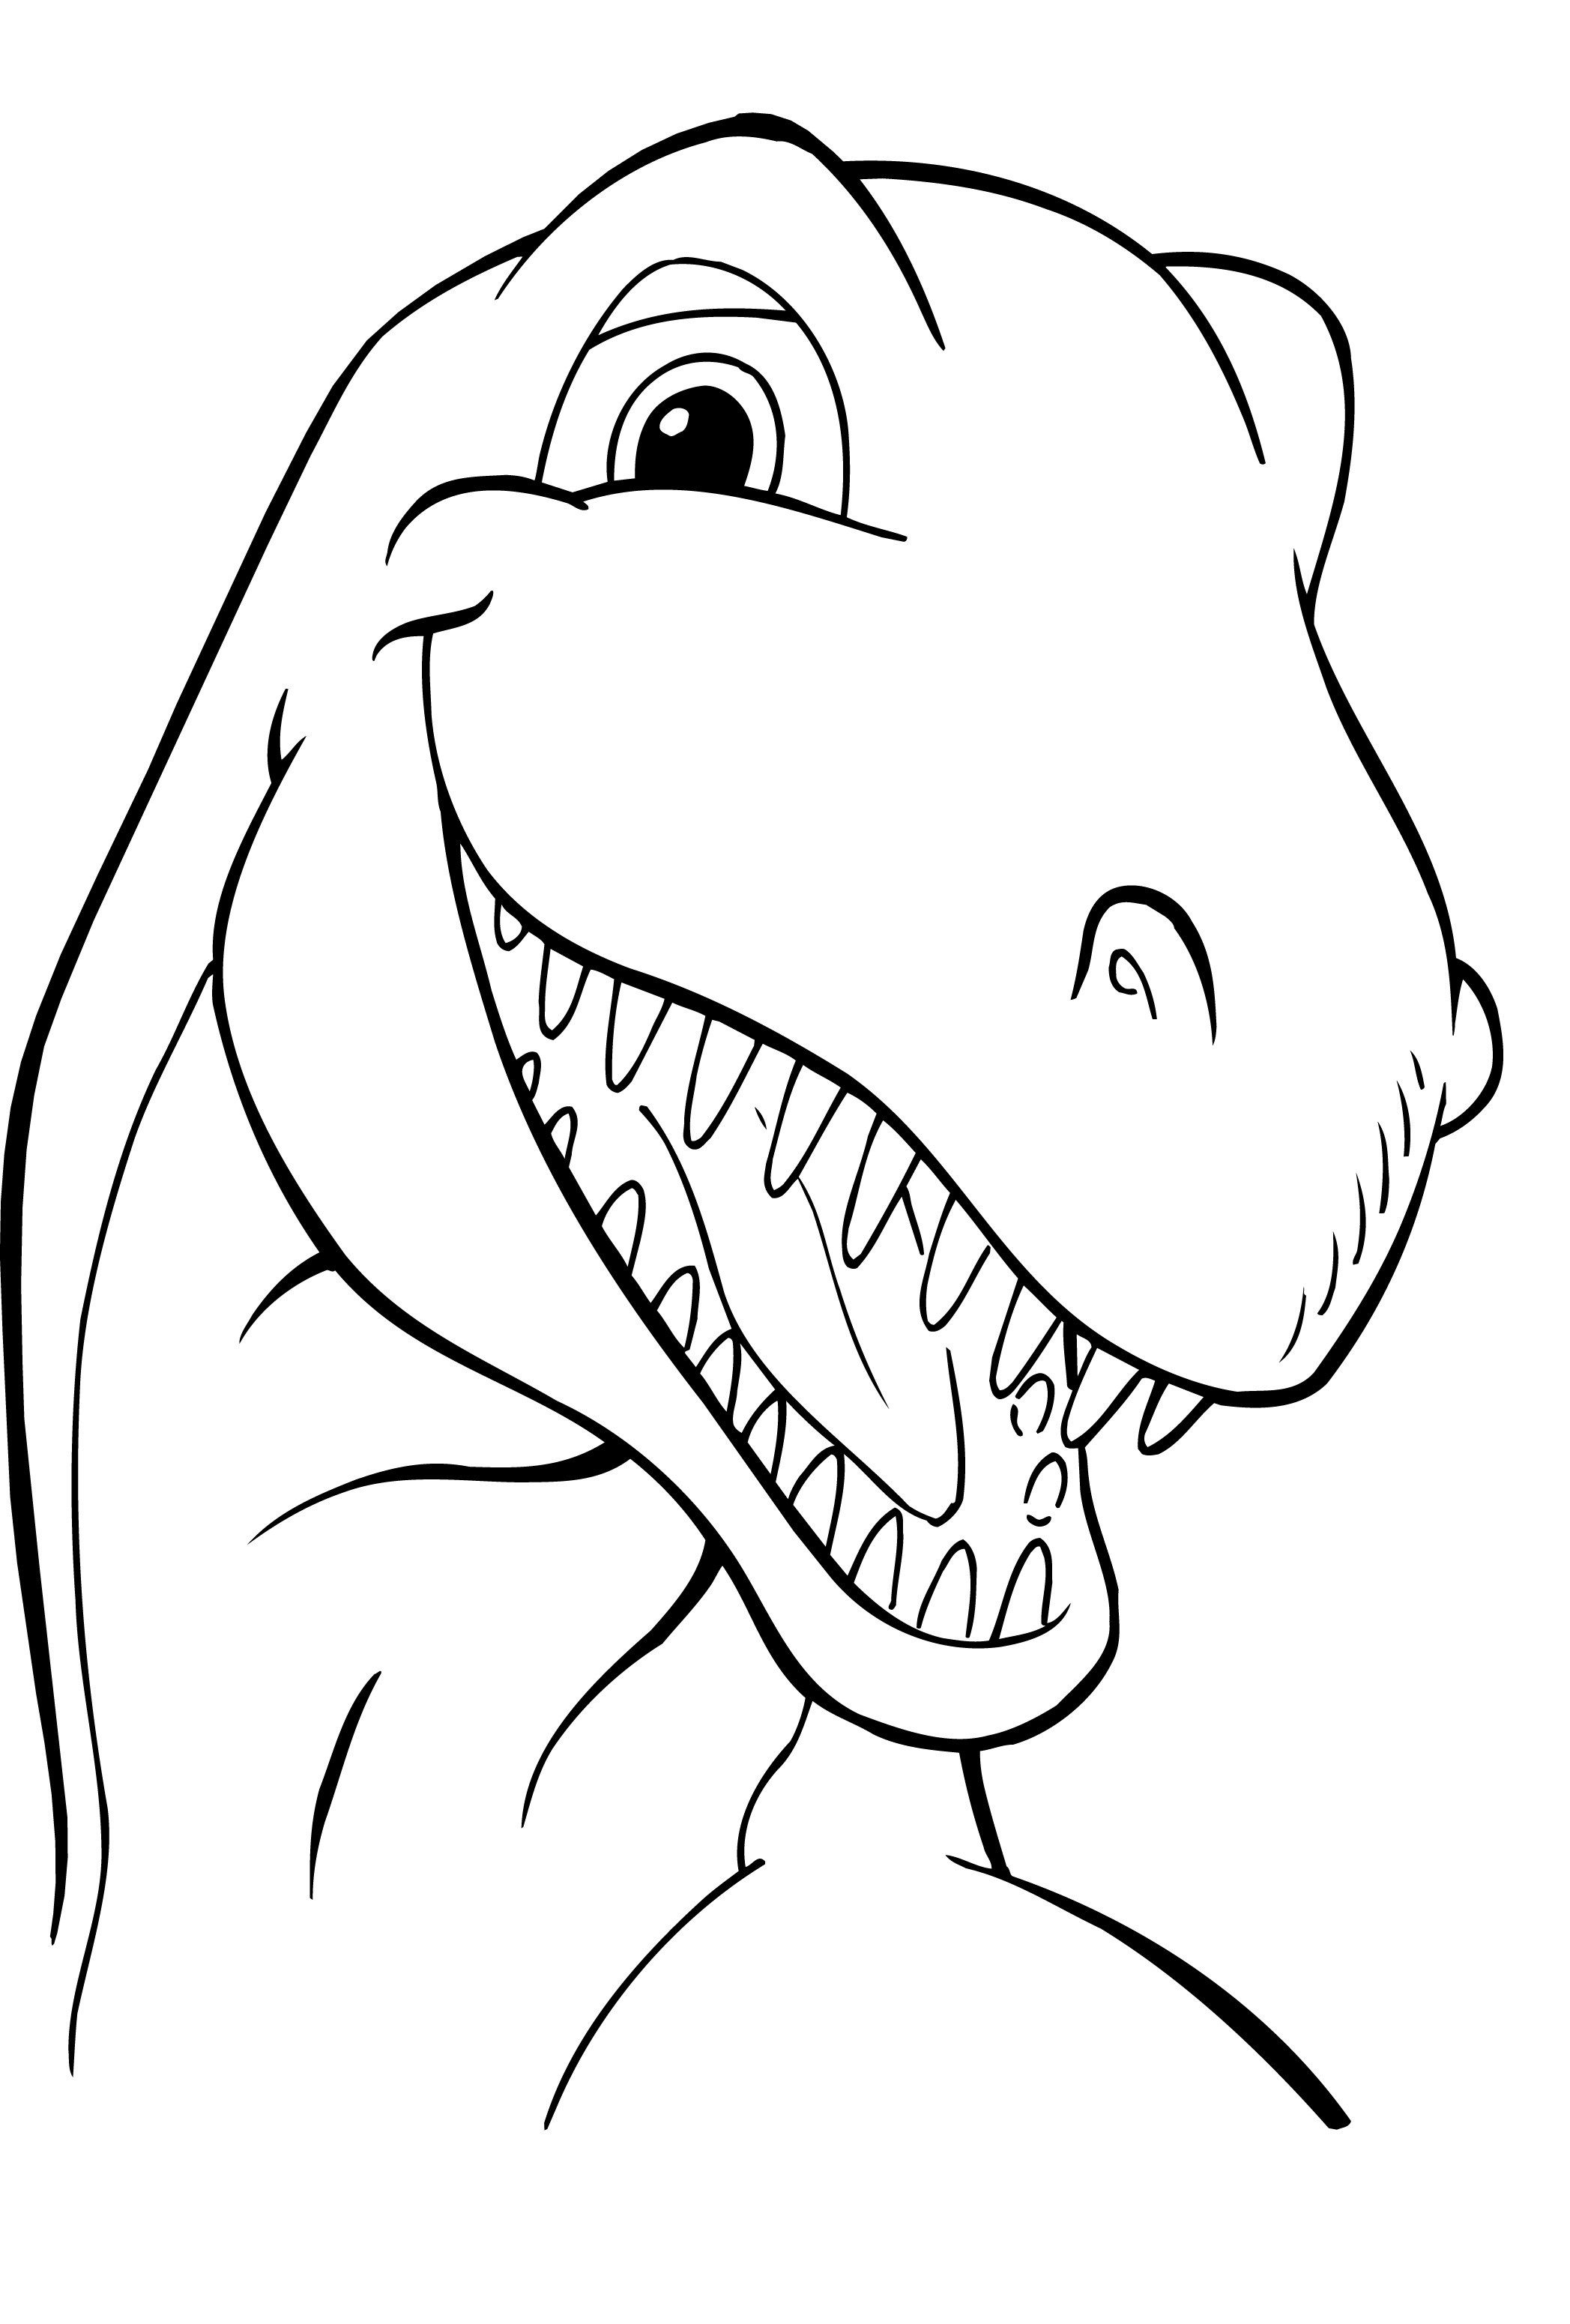 printable dinosaur coloring pages - dinosaur coloring pages